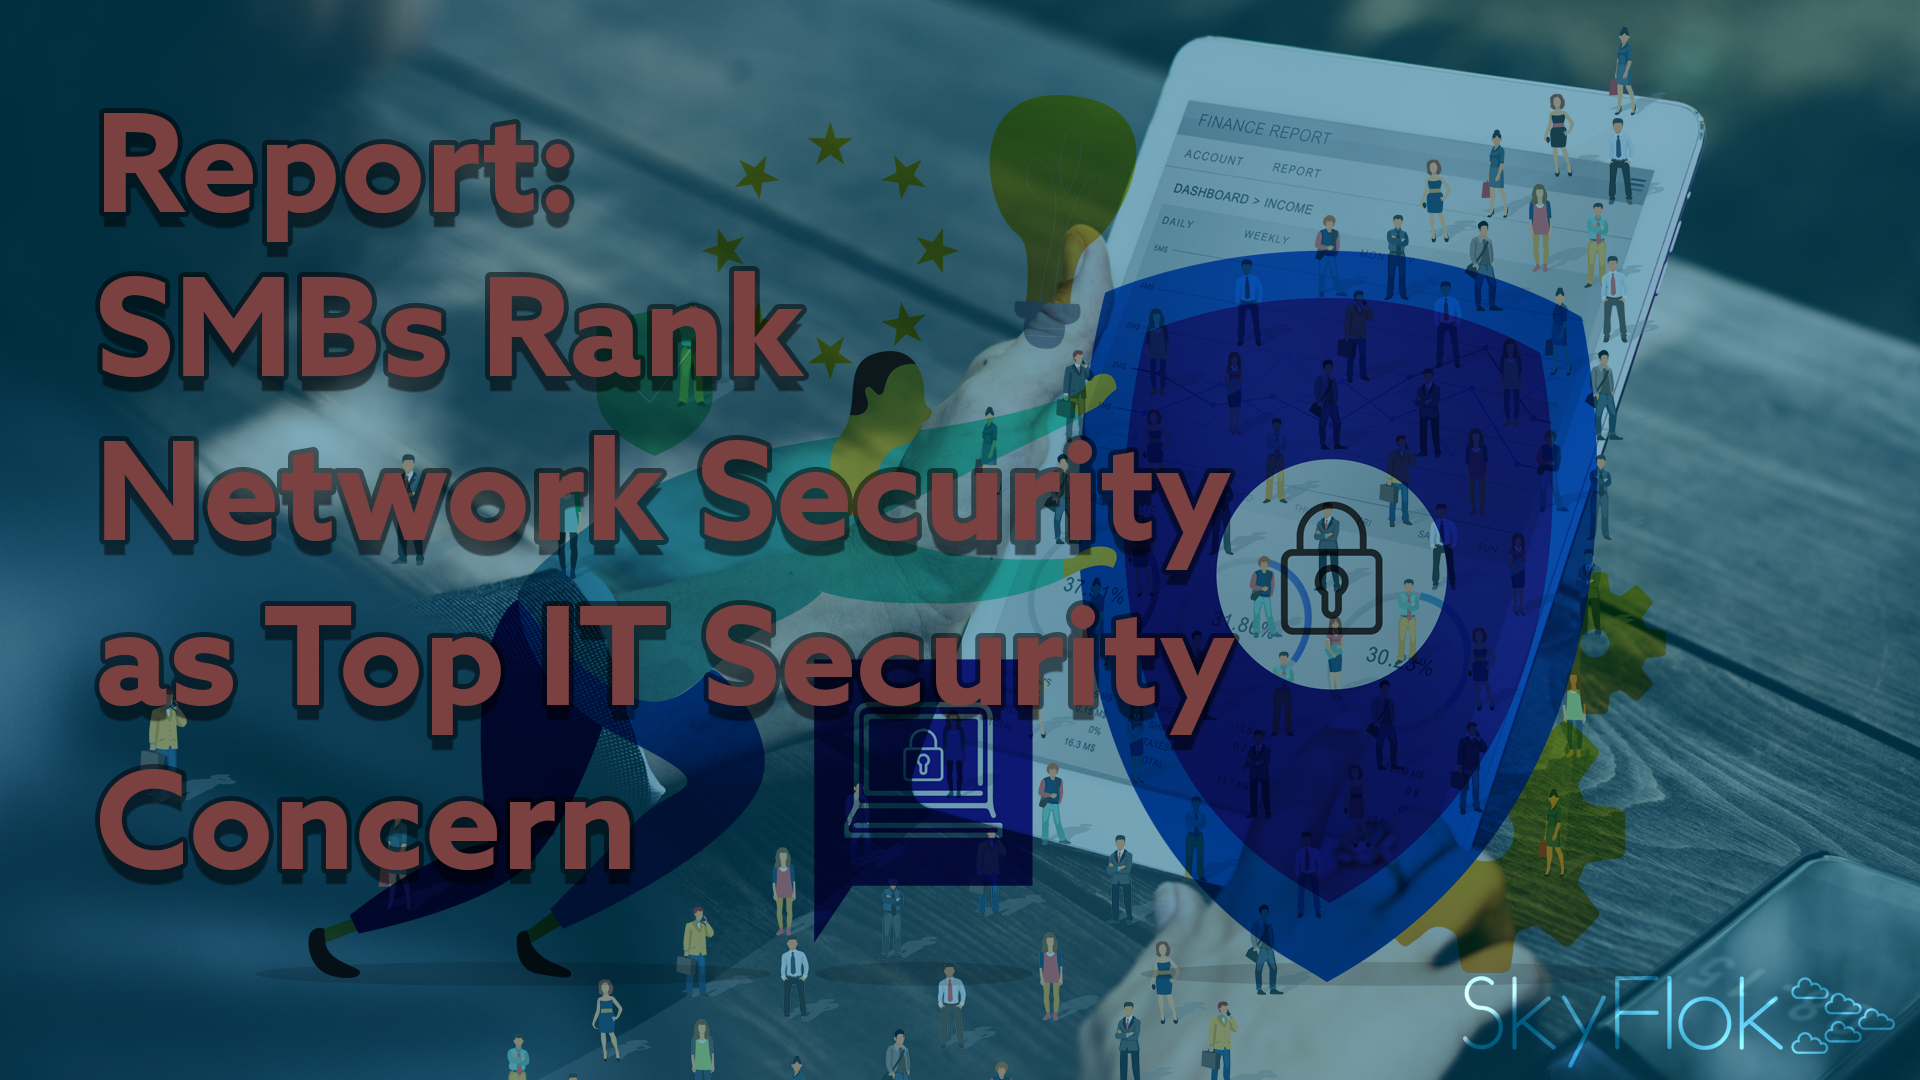 Report: SMBs Rank Network Security as Top IT Security Concern